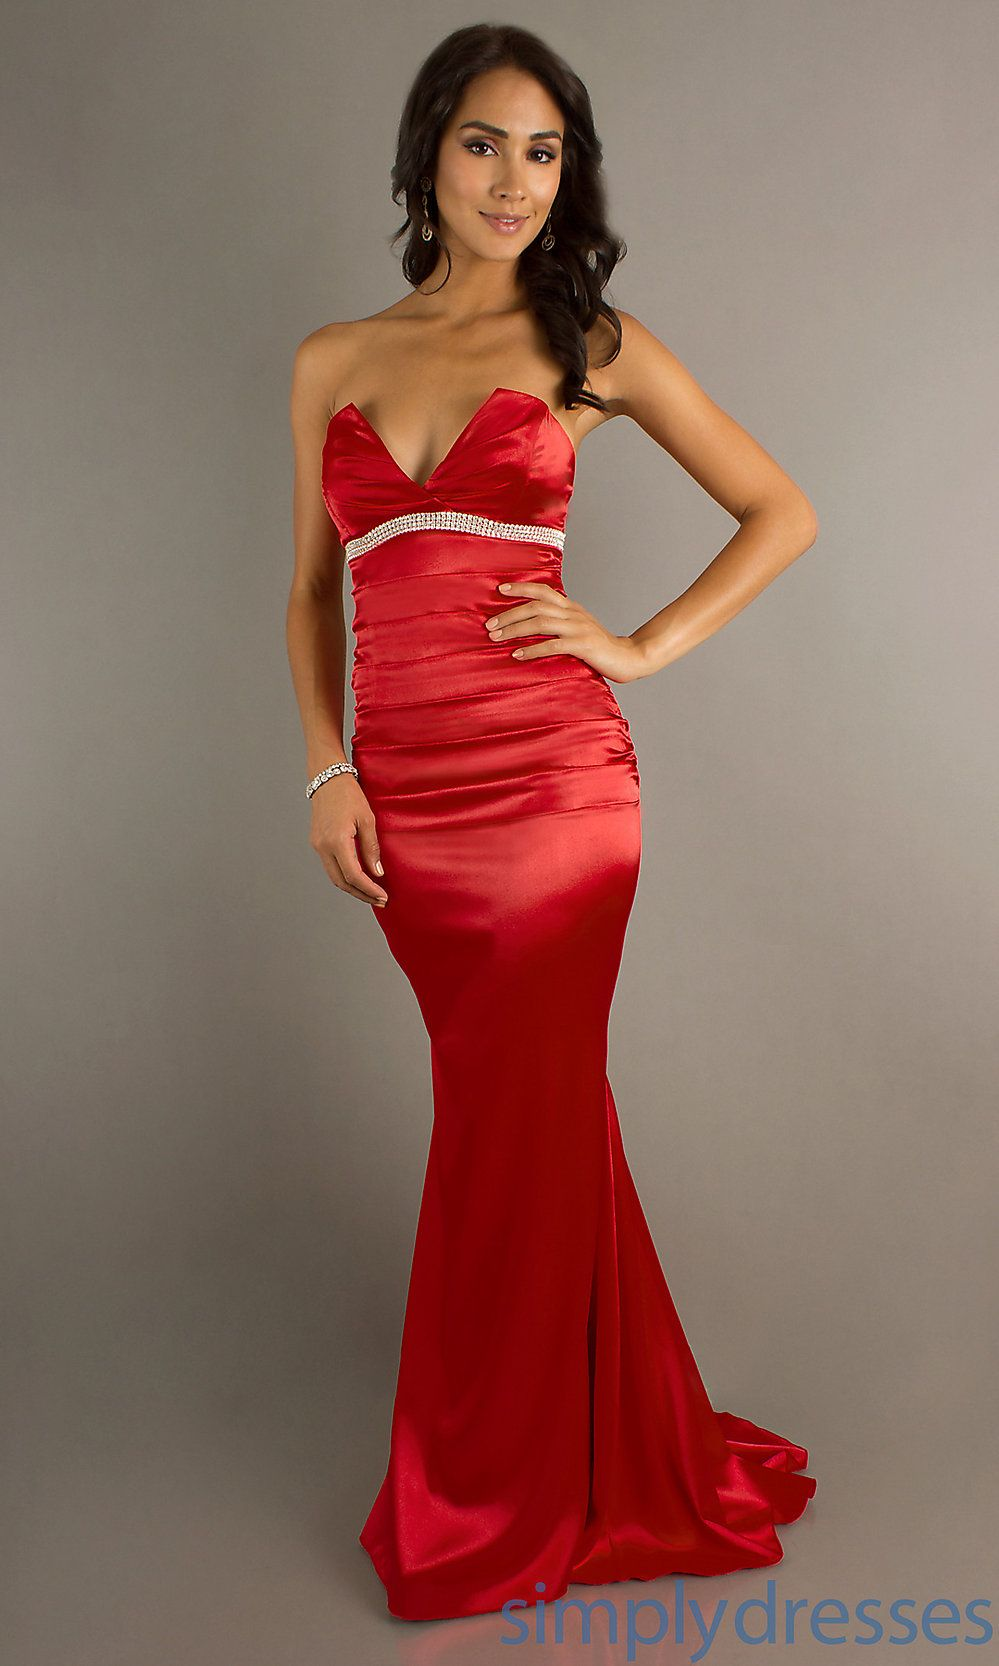 RED GOWENS | Atria Red Strapless Gown, Celebrity Prom Dresses ...